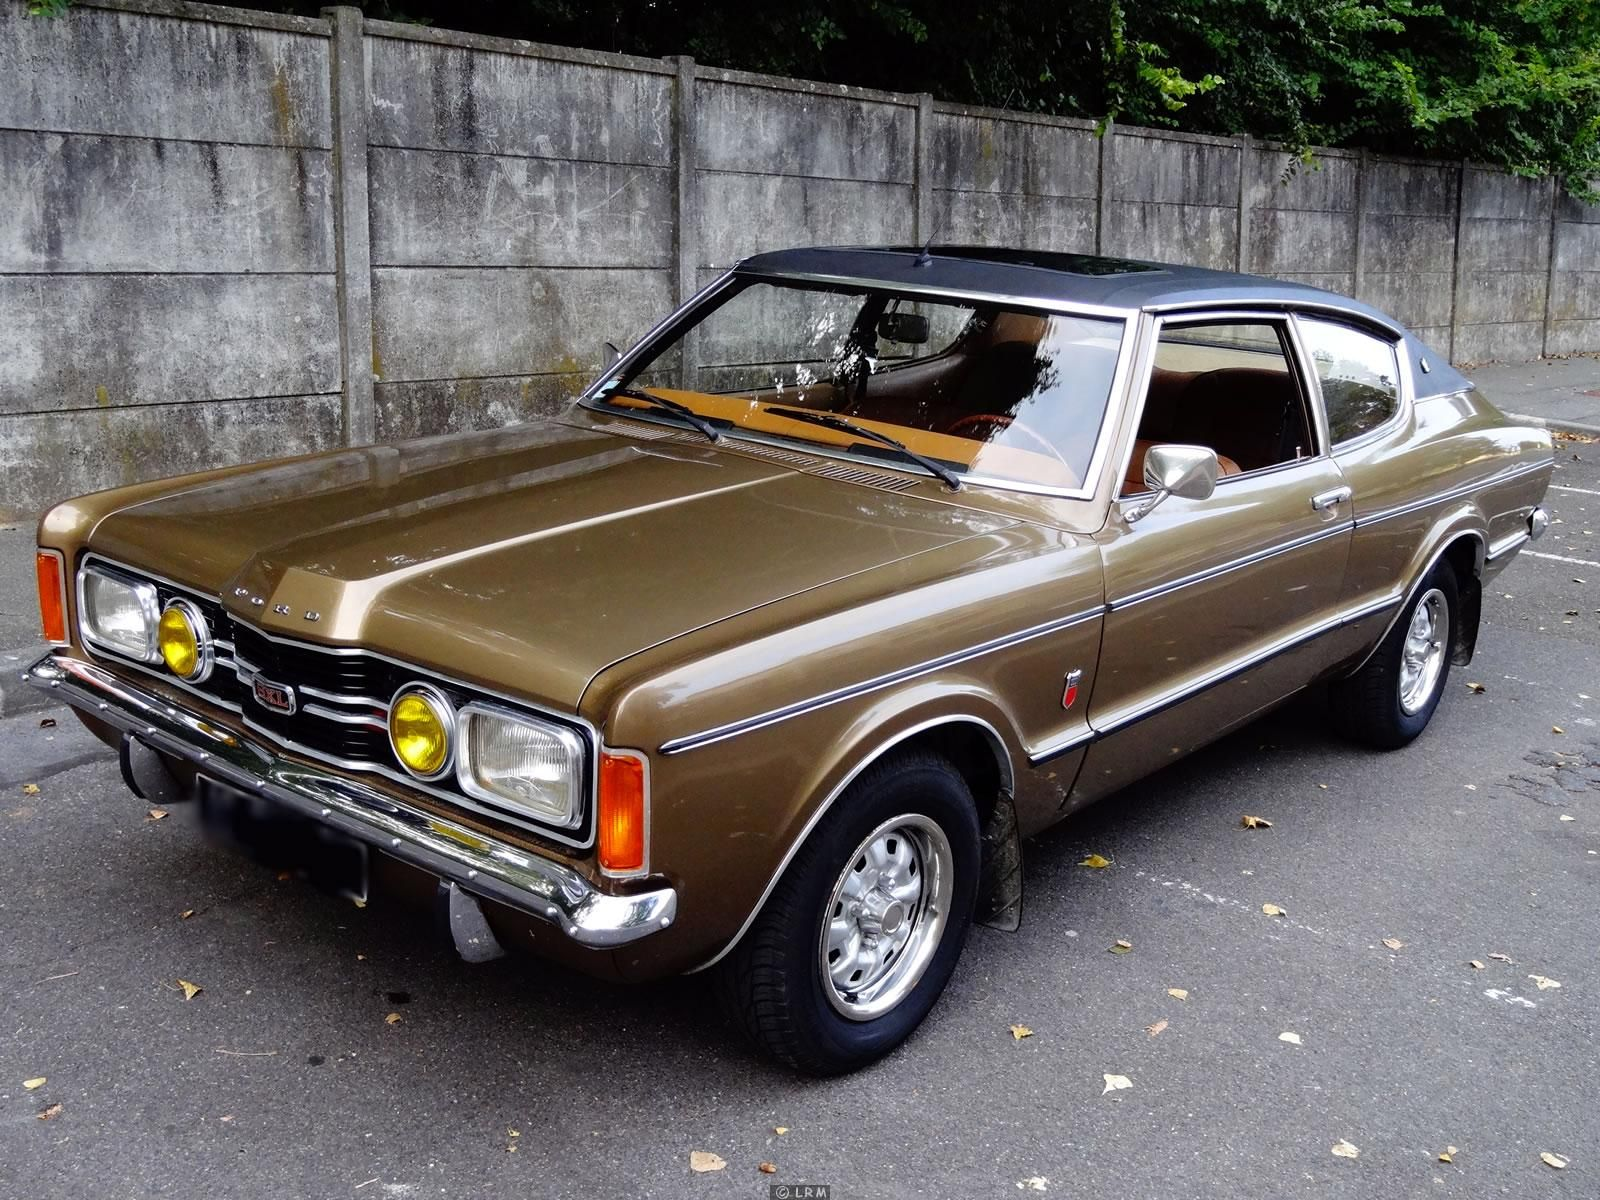 1974 Ford Taunus Gxl Coupe Classic Cars Classic Cars Vintage